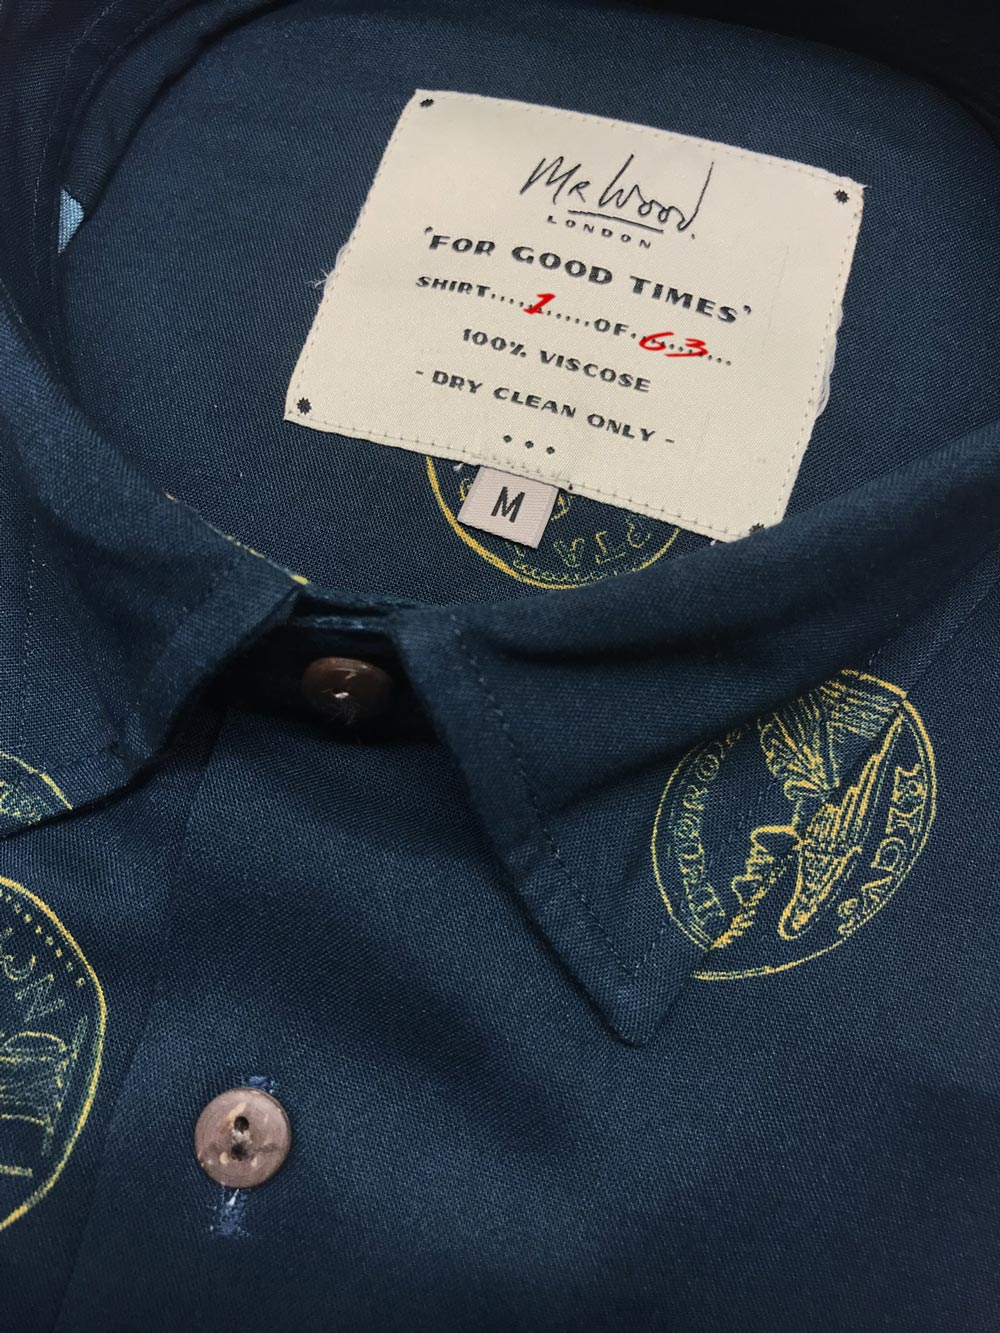 A shirt brand that inspires style in everyday life. Proudly designed in London.